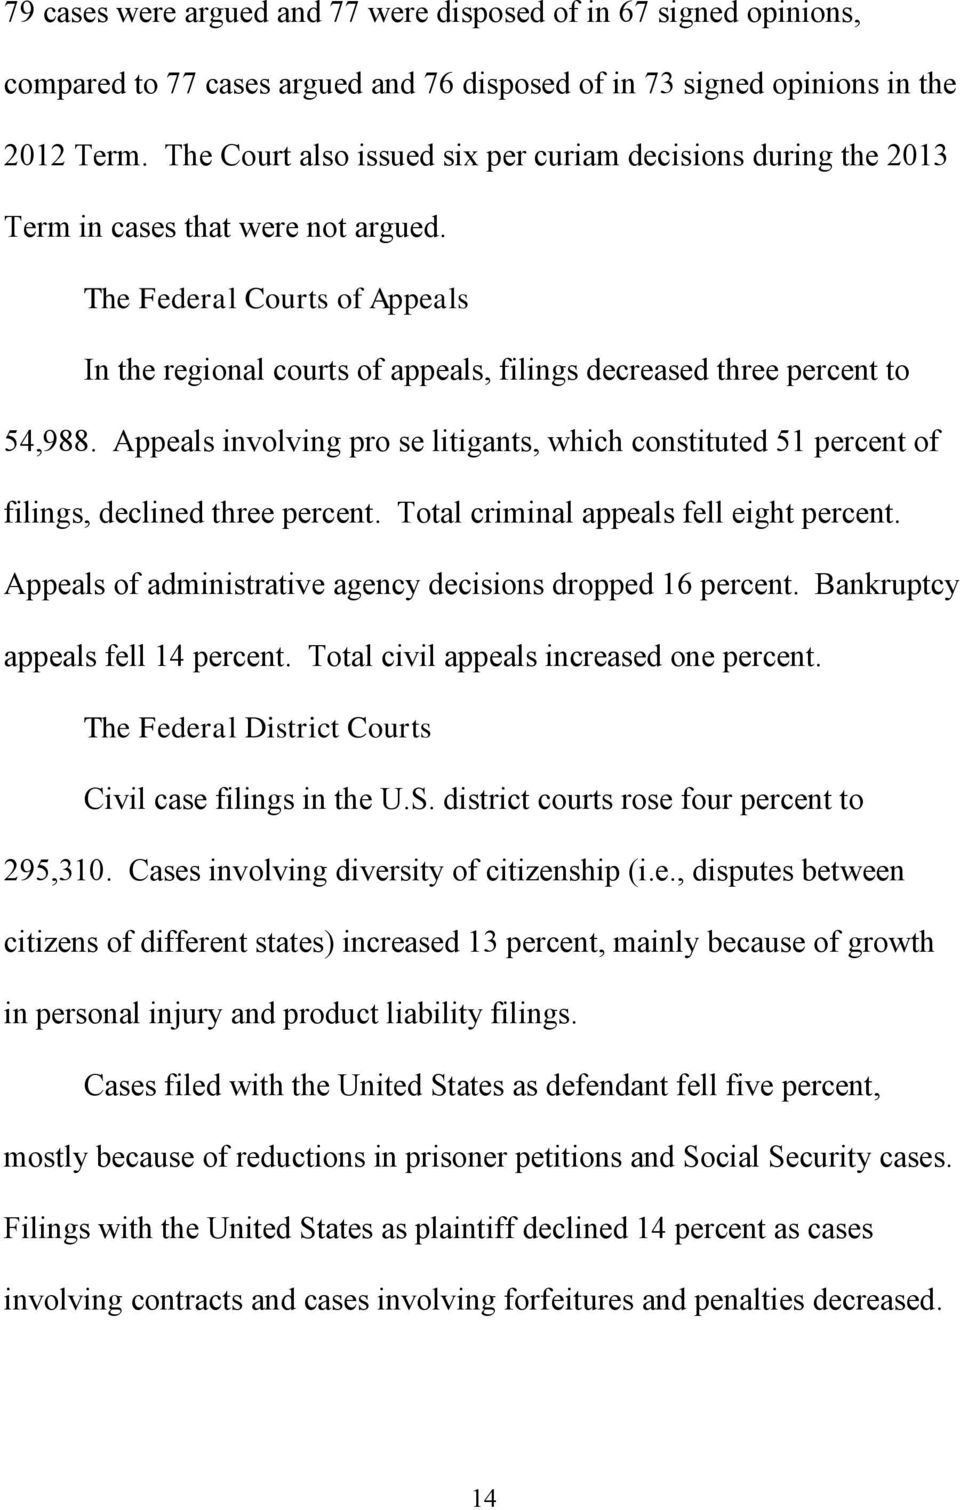 The Federal Courts of Appeals In the regional courts of appeals, filings decreased three percent to 54,988.